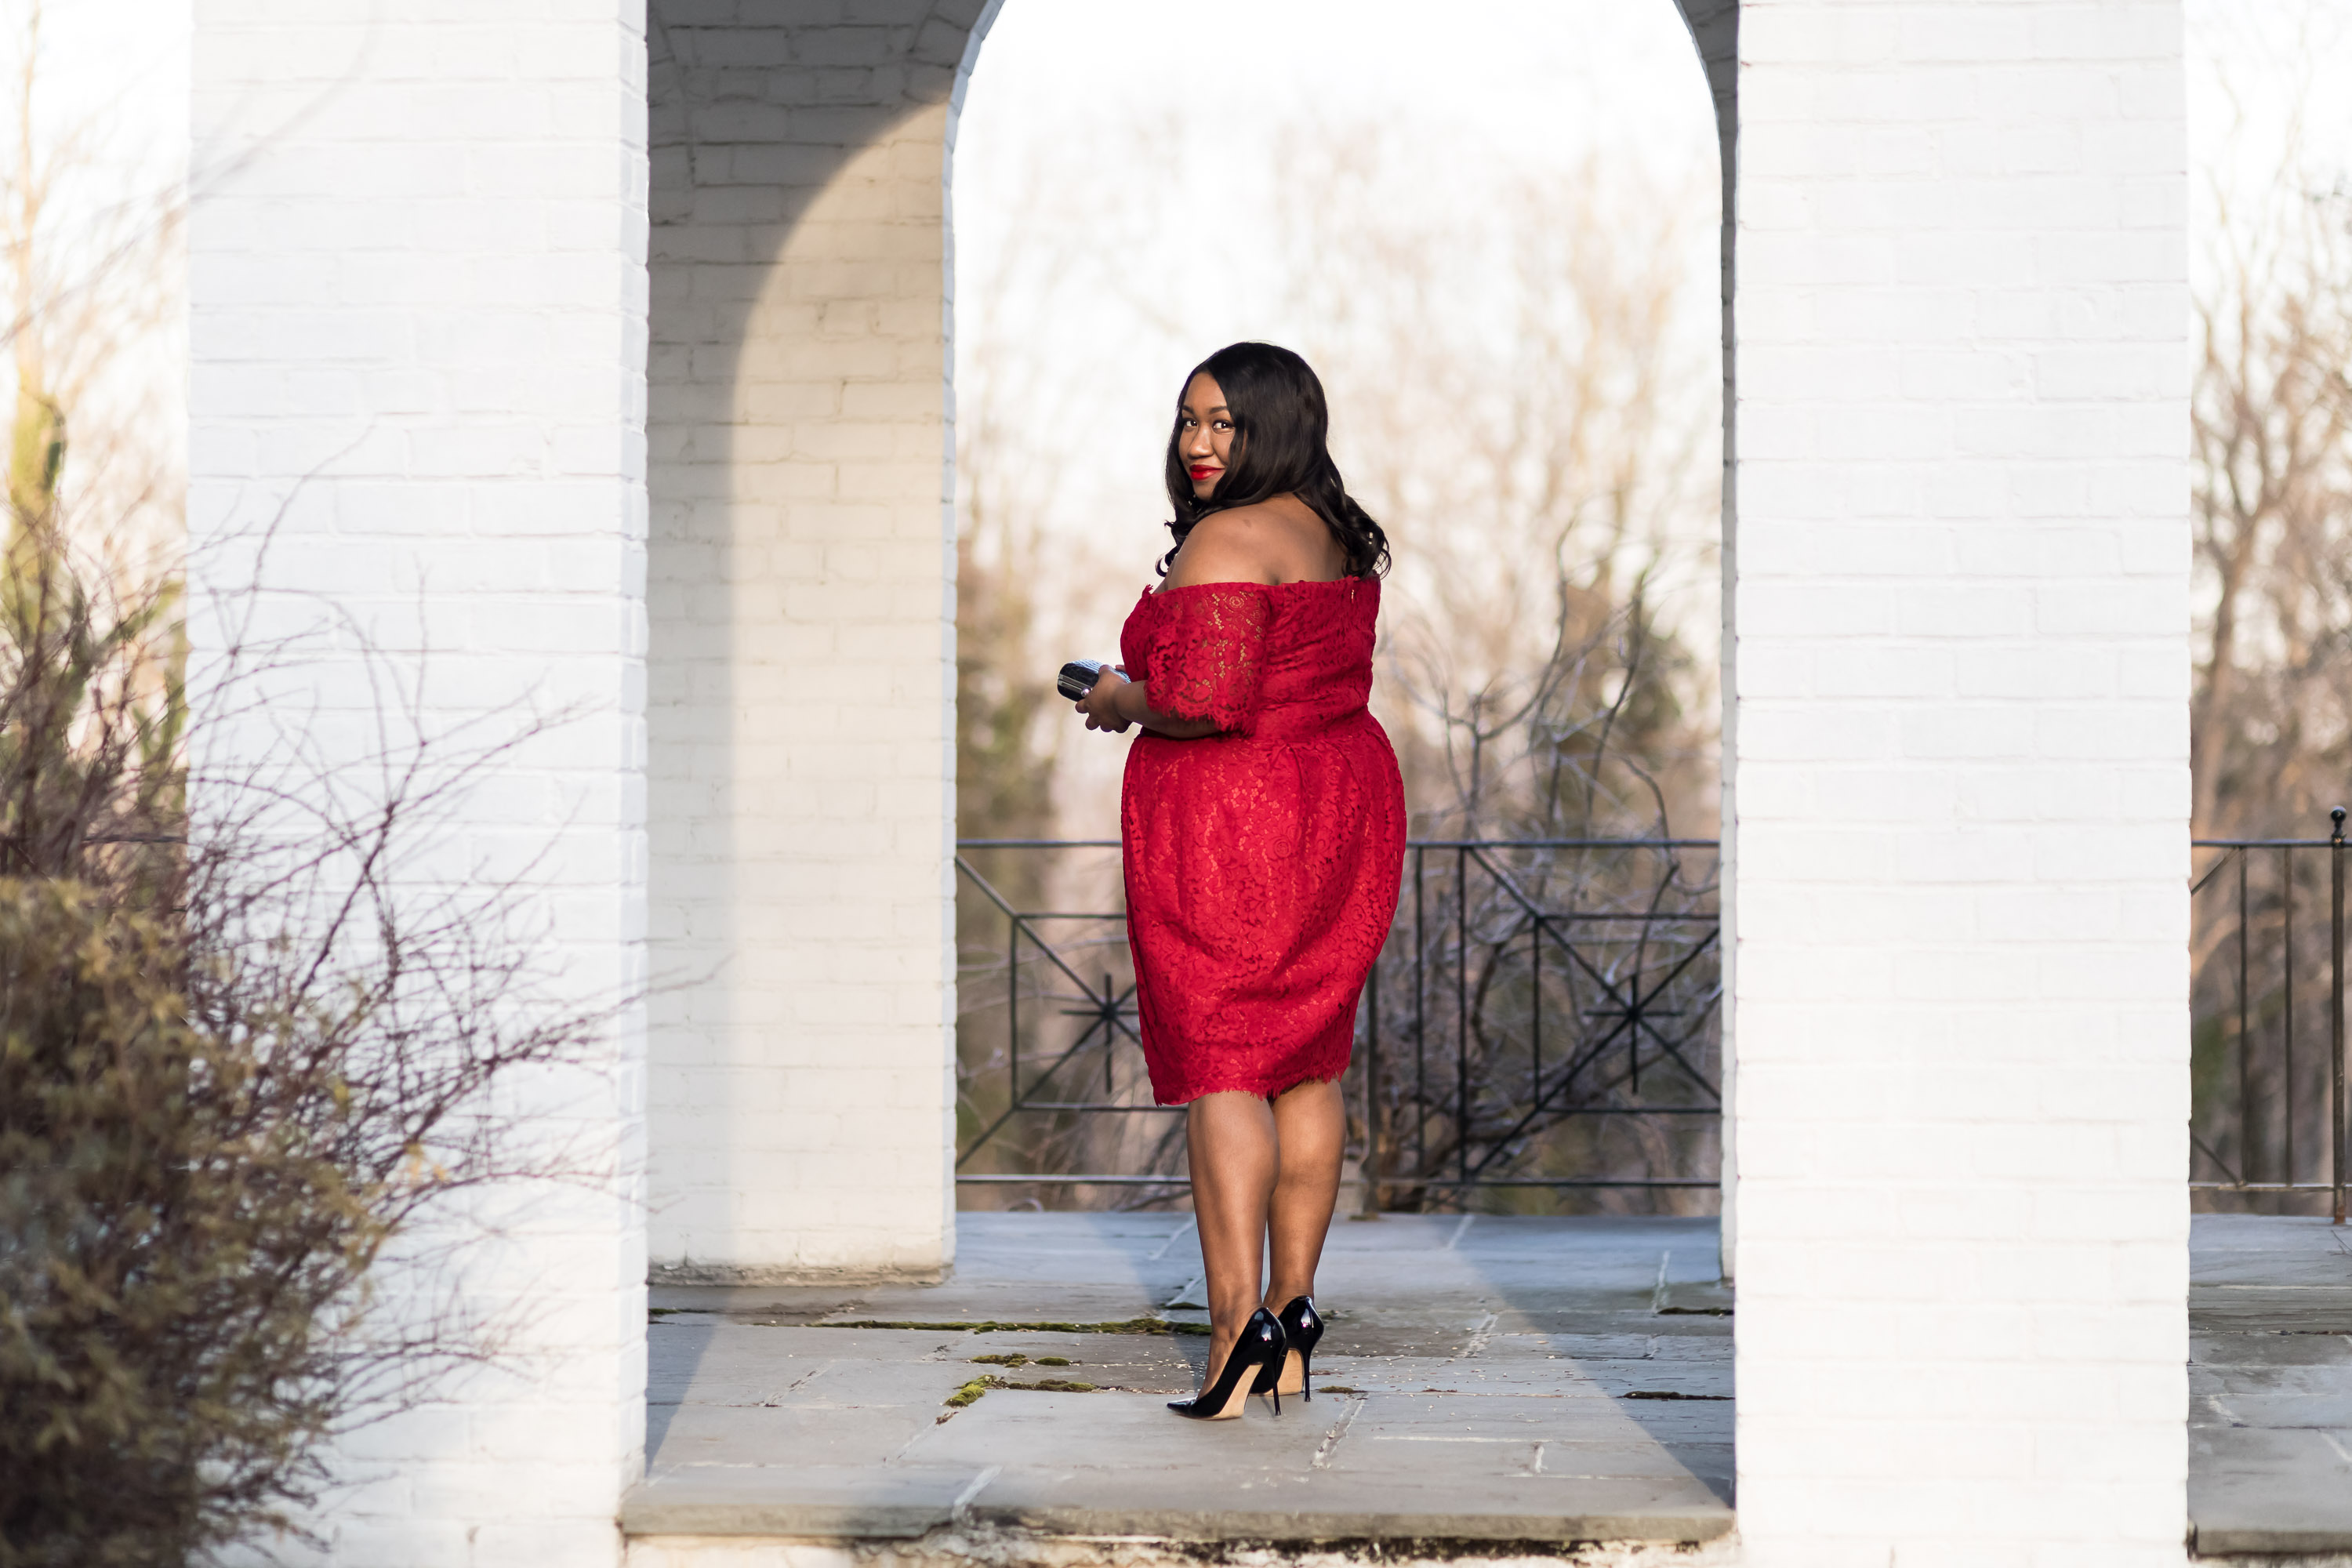 2be09d97309 Plus Size Red Dress Outfit - Shapely Chic Sheri - Plus Size Fashion Blog  for Curvy Women